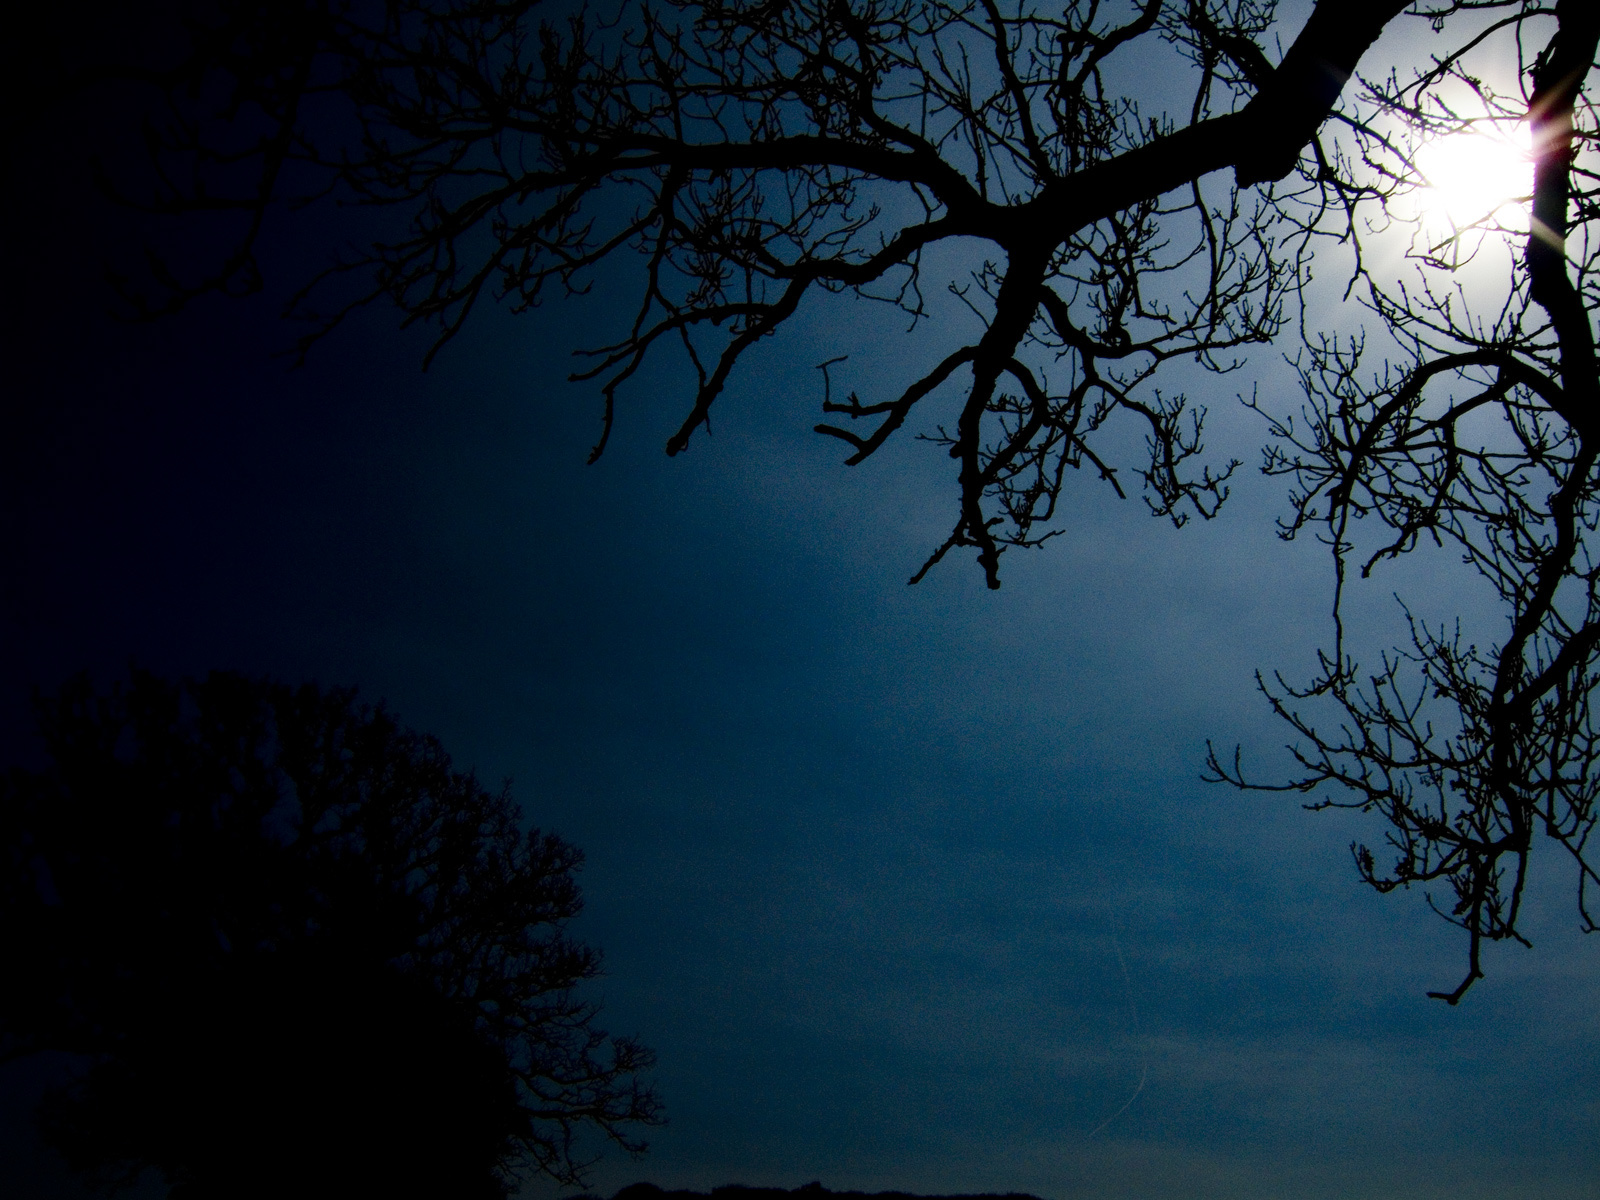 generic tree silhouette by HD Wallpaper